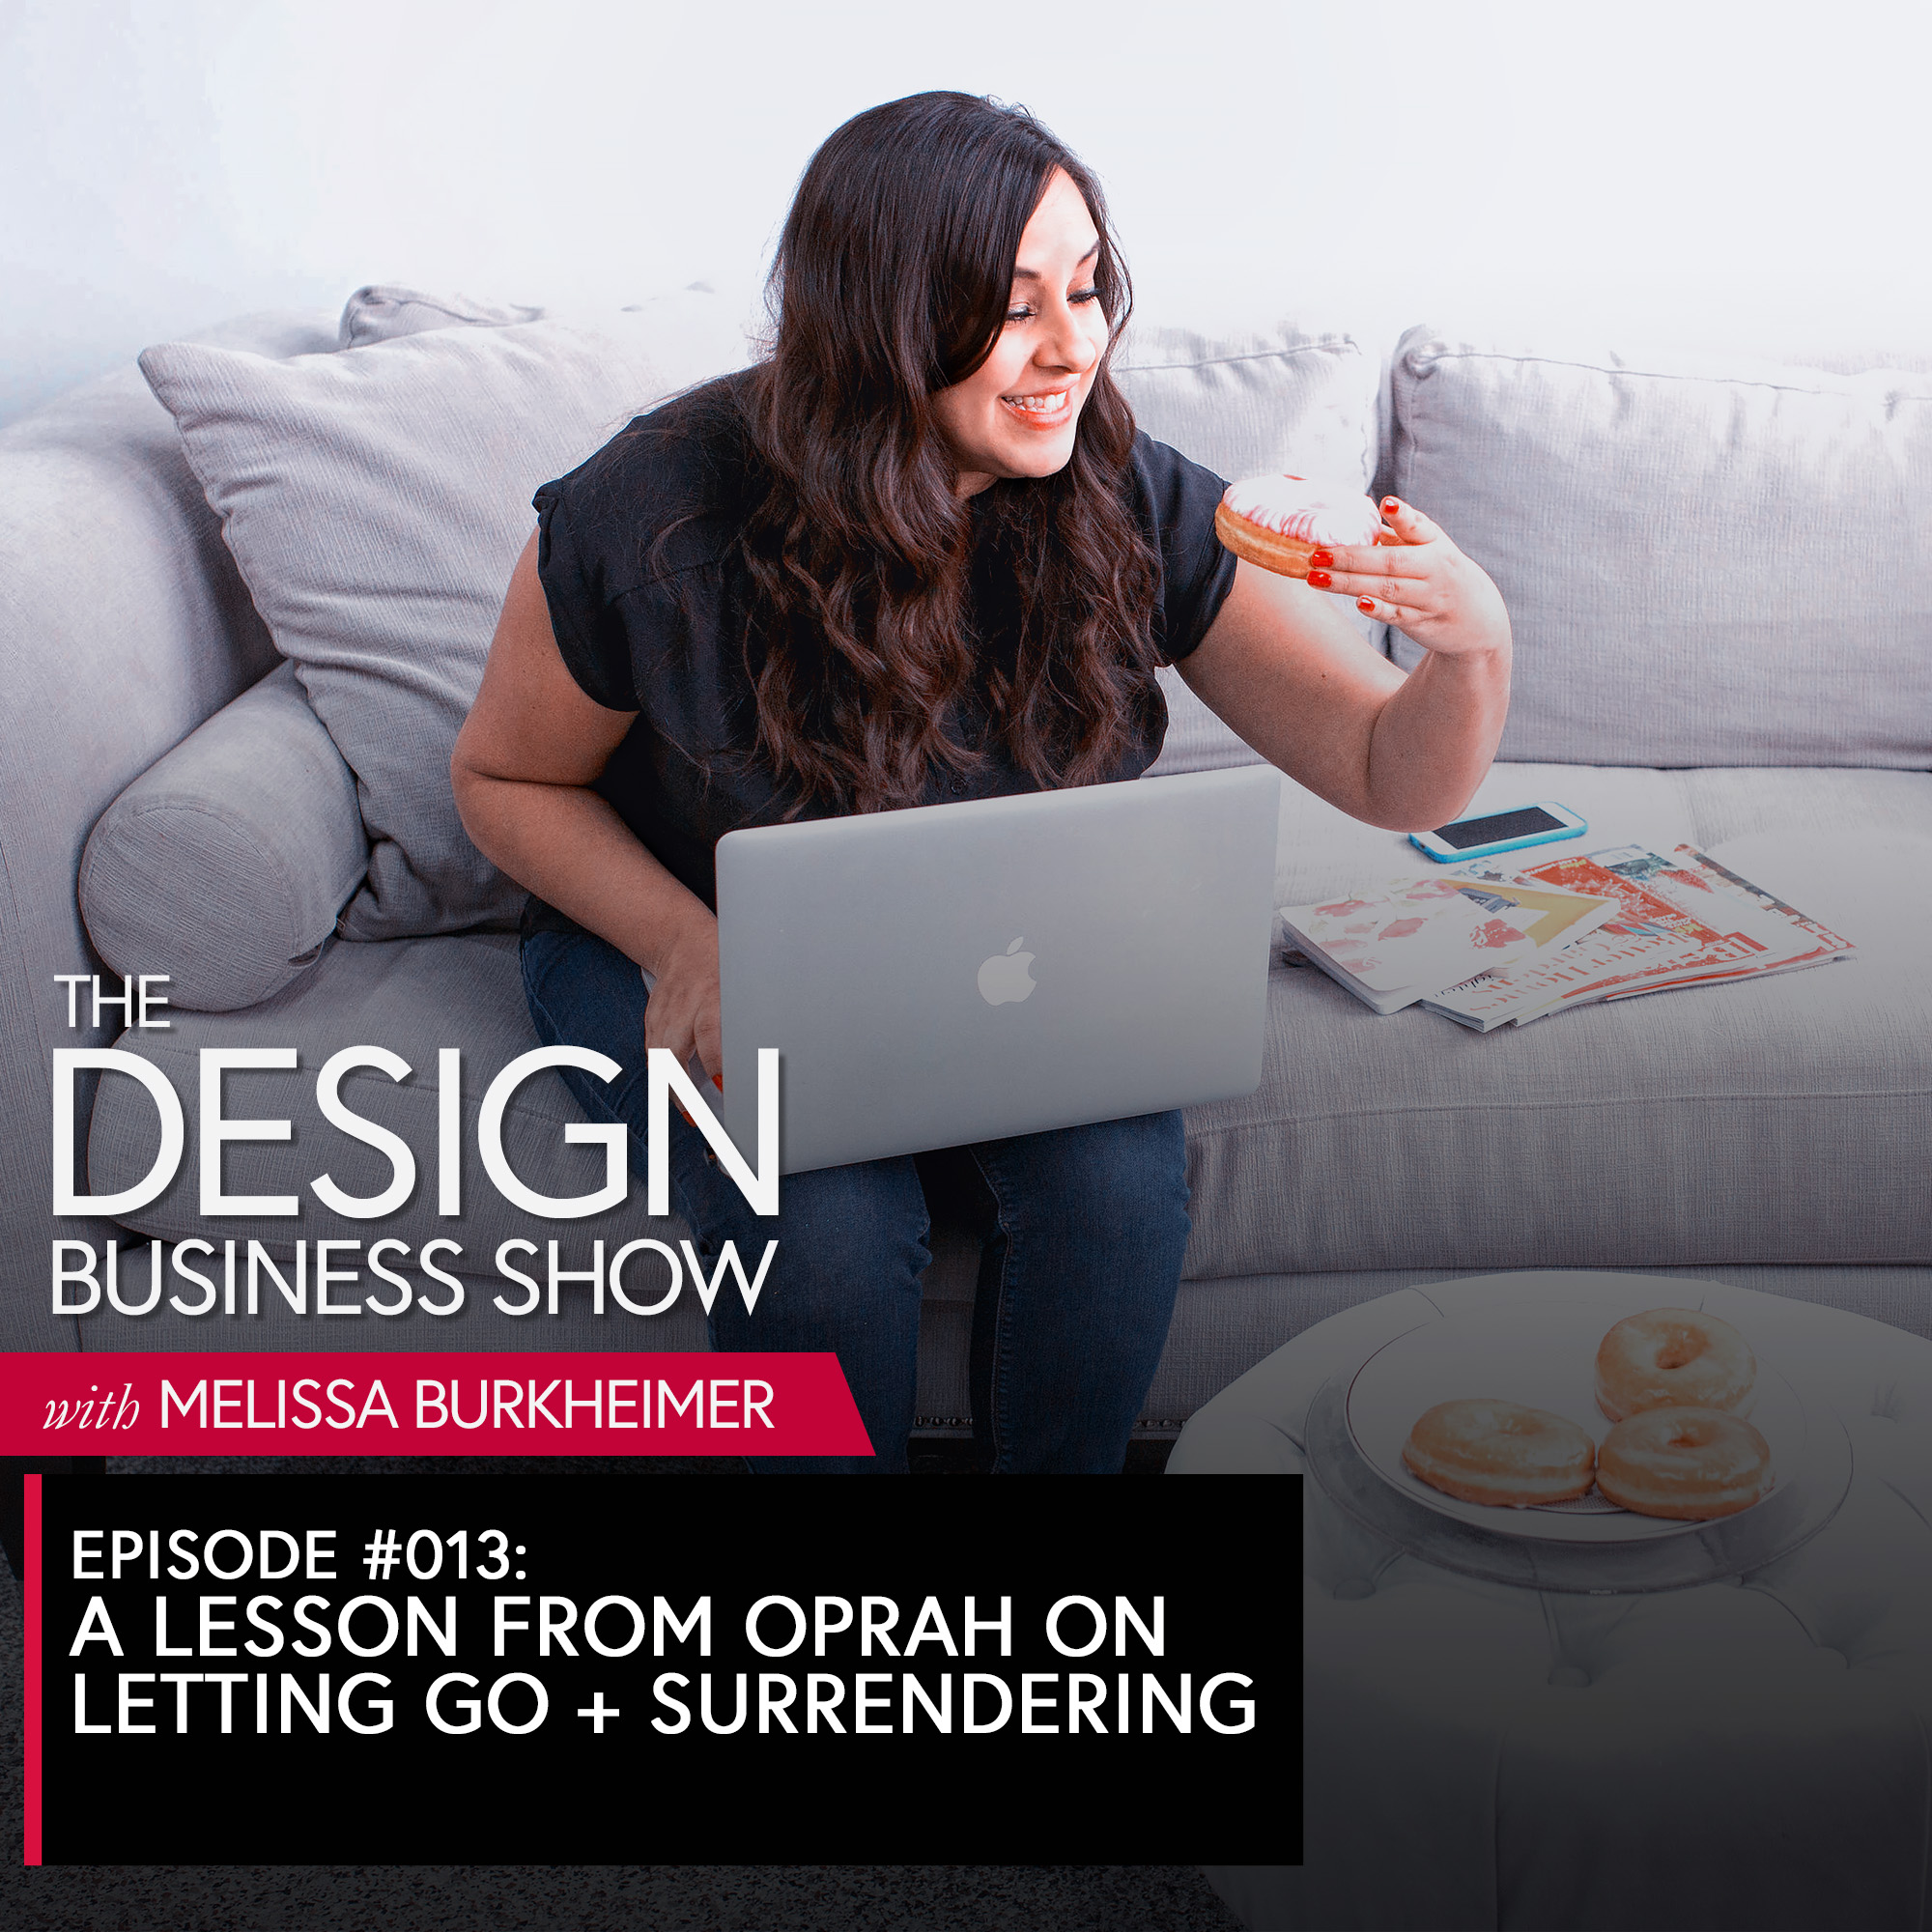 Learn from the queen herself, Oprah, about what to do when you're having doubts in your business.